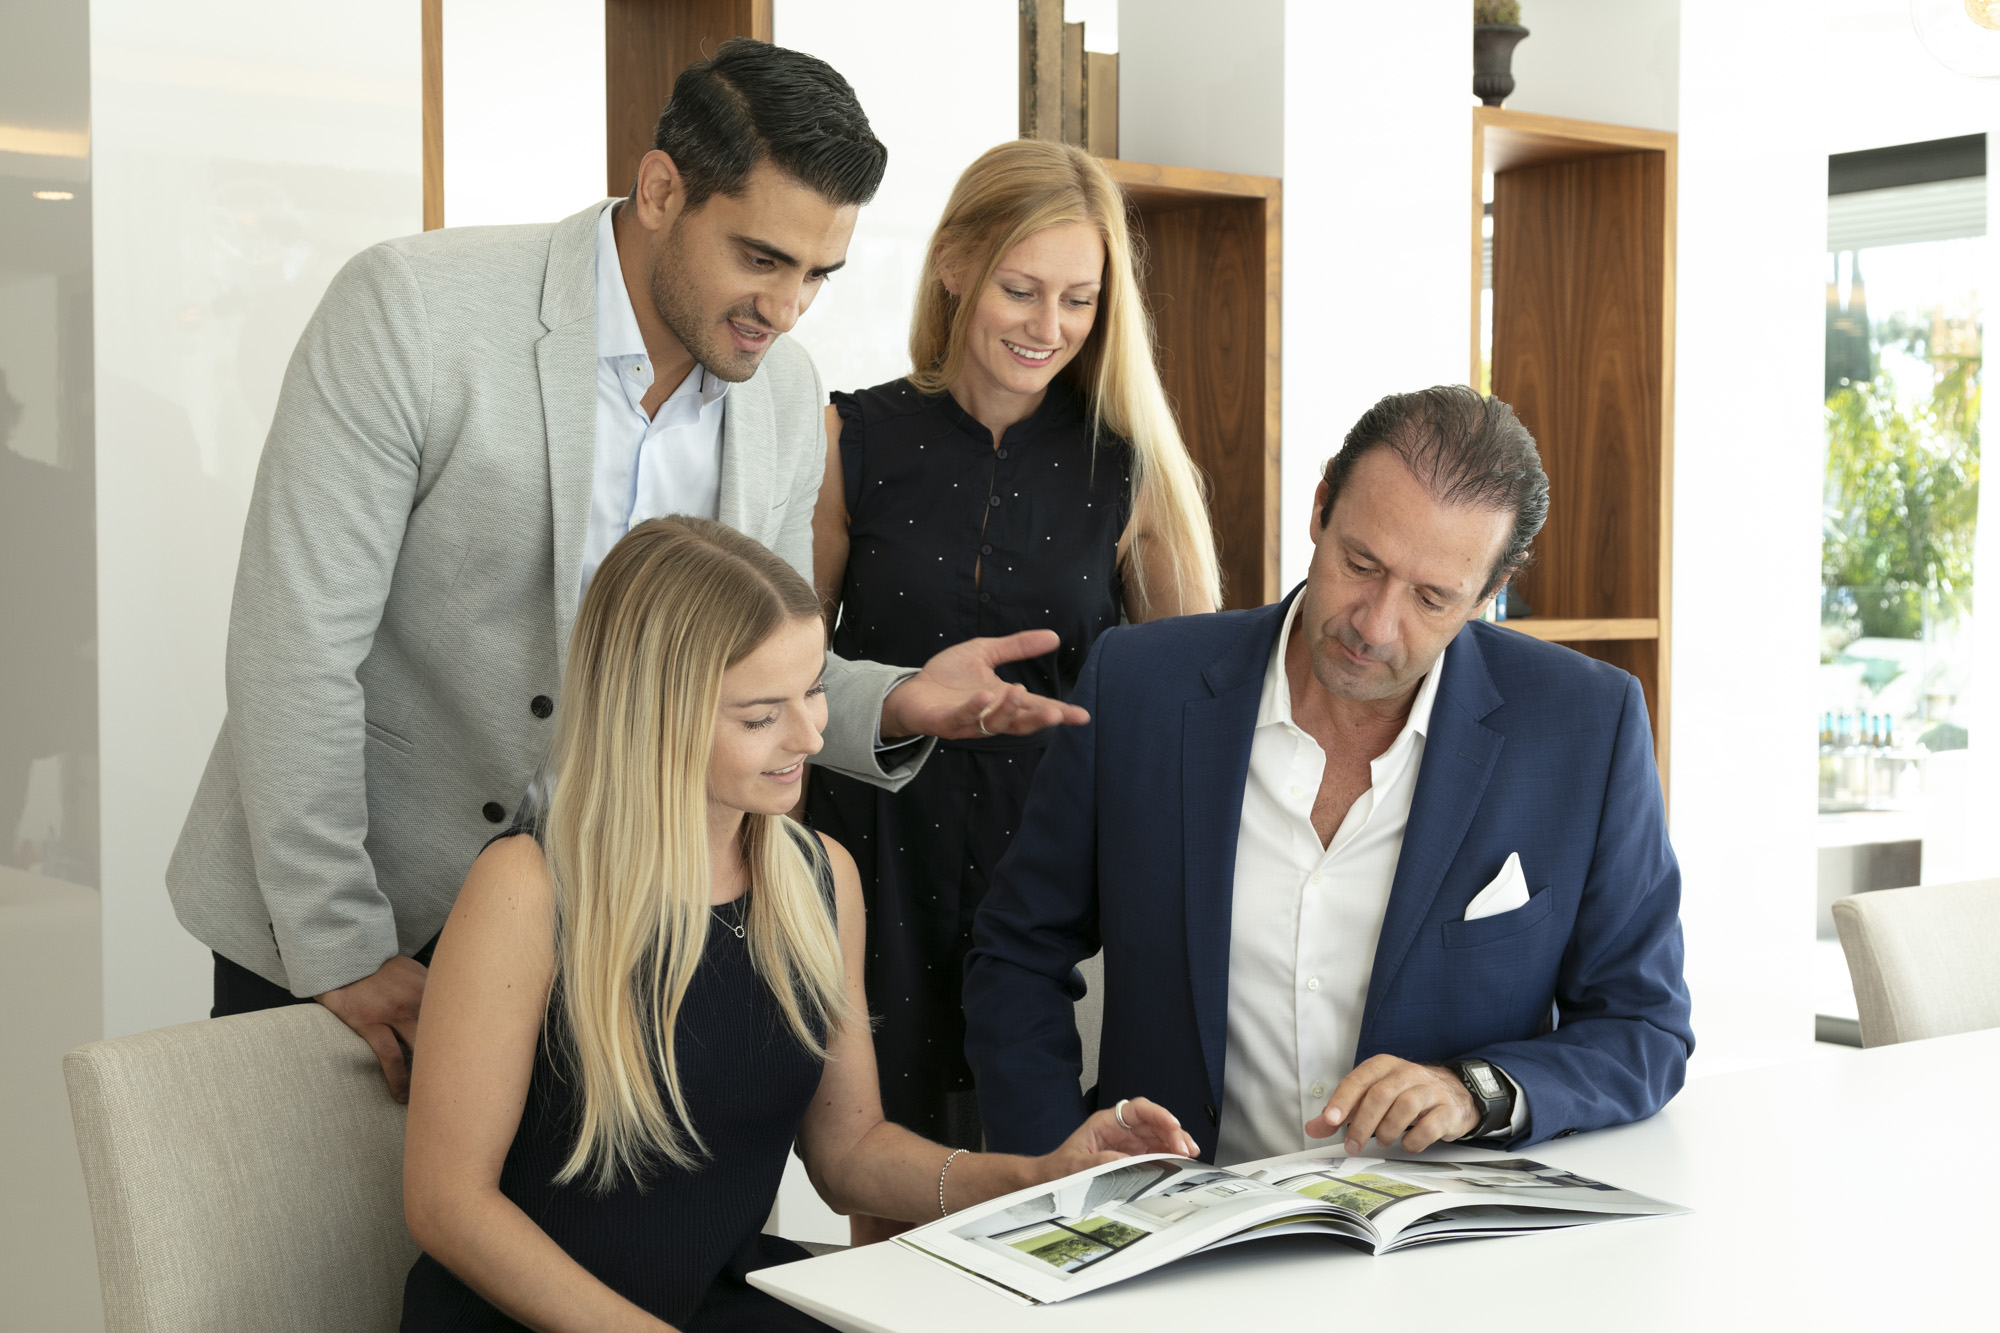 Marbella Real Estate Agents